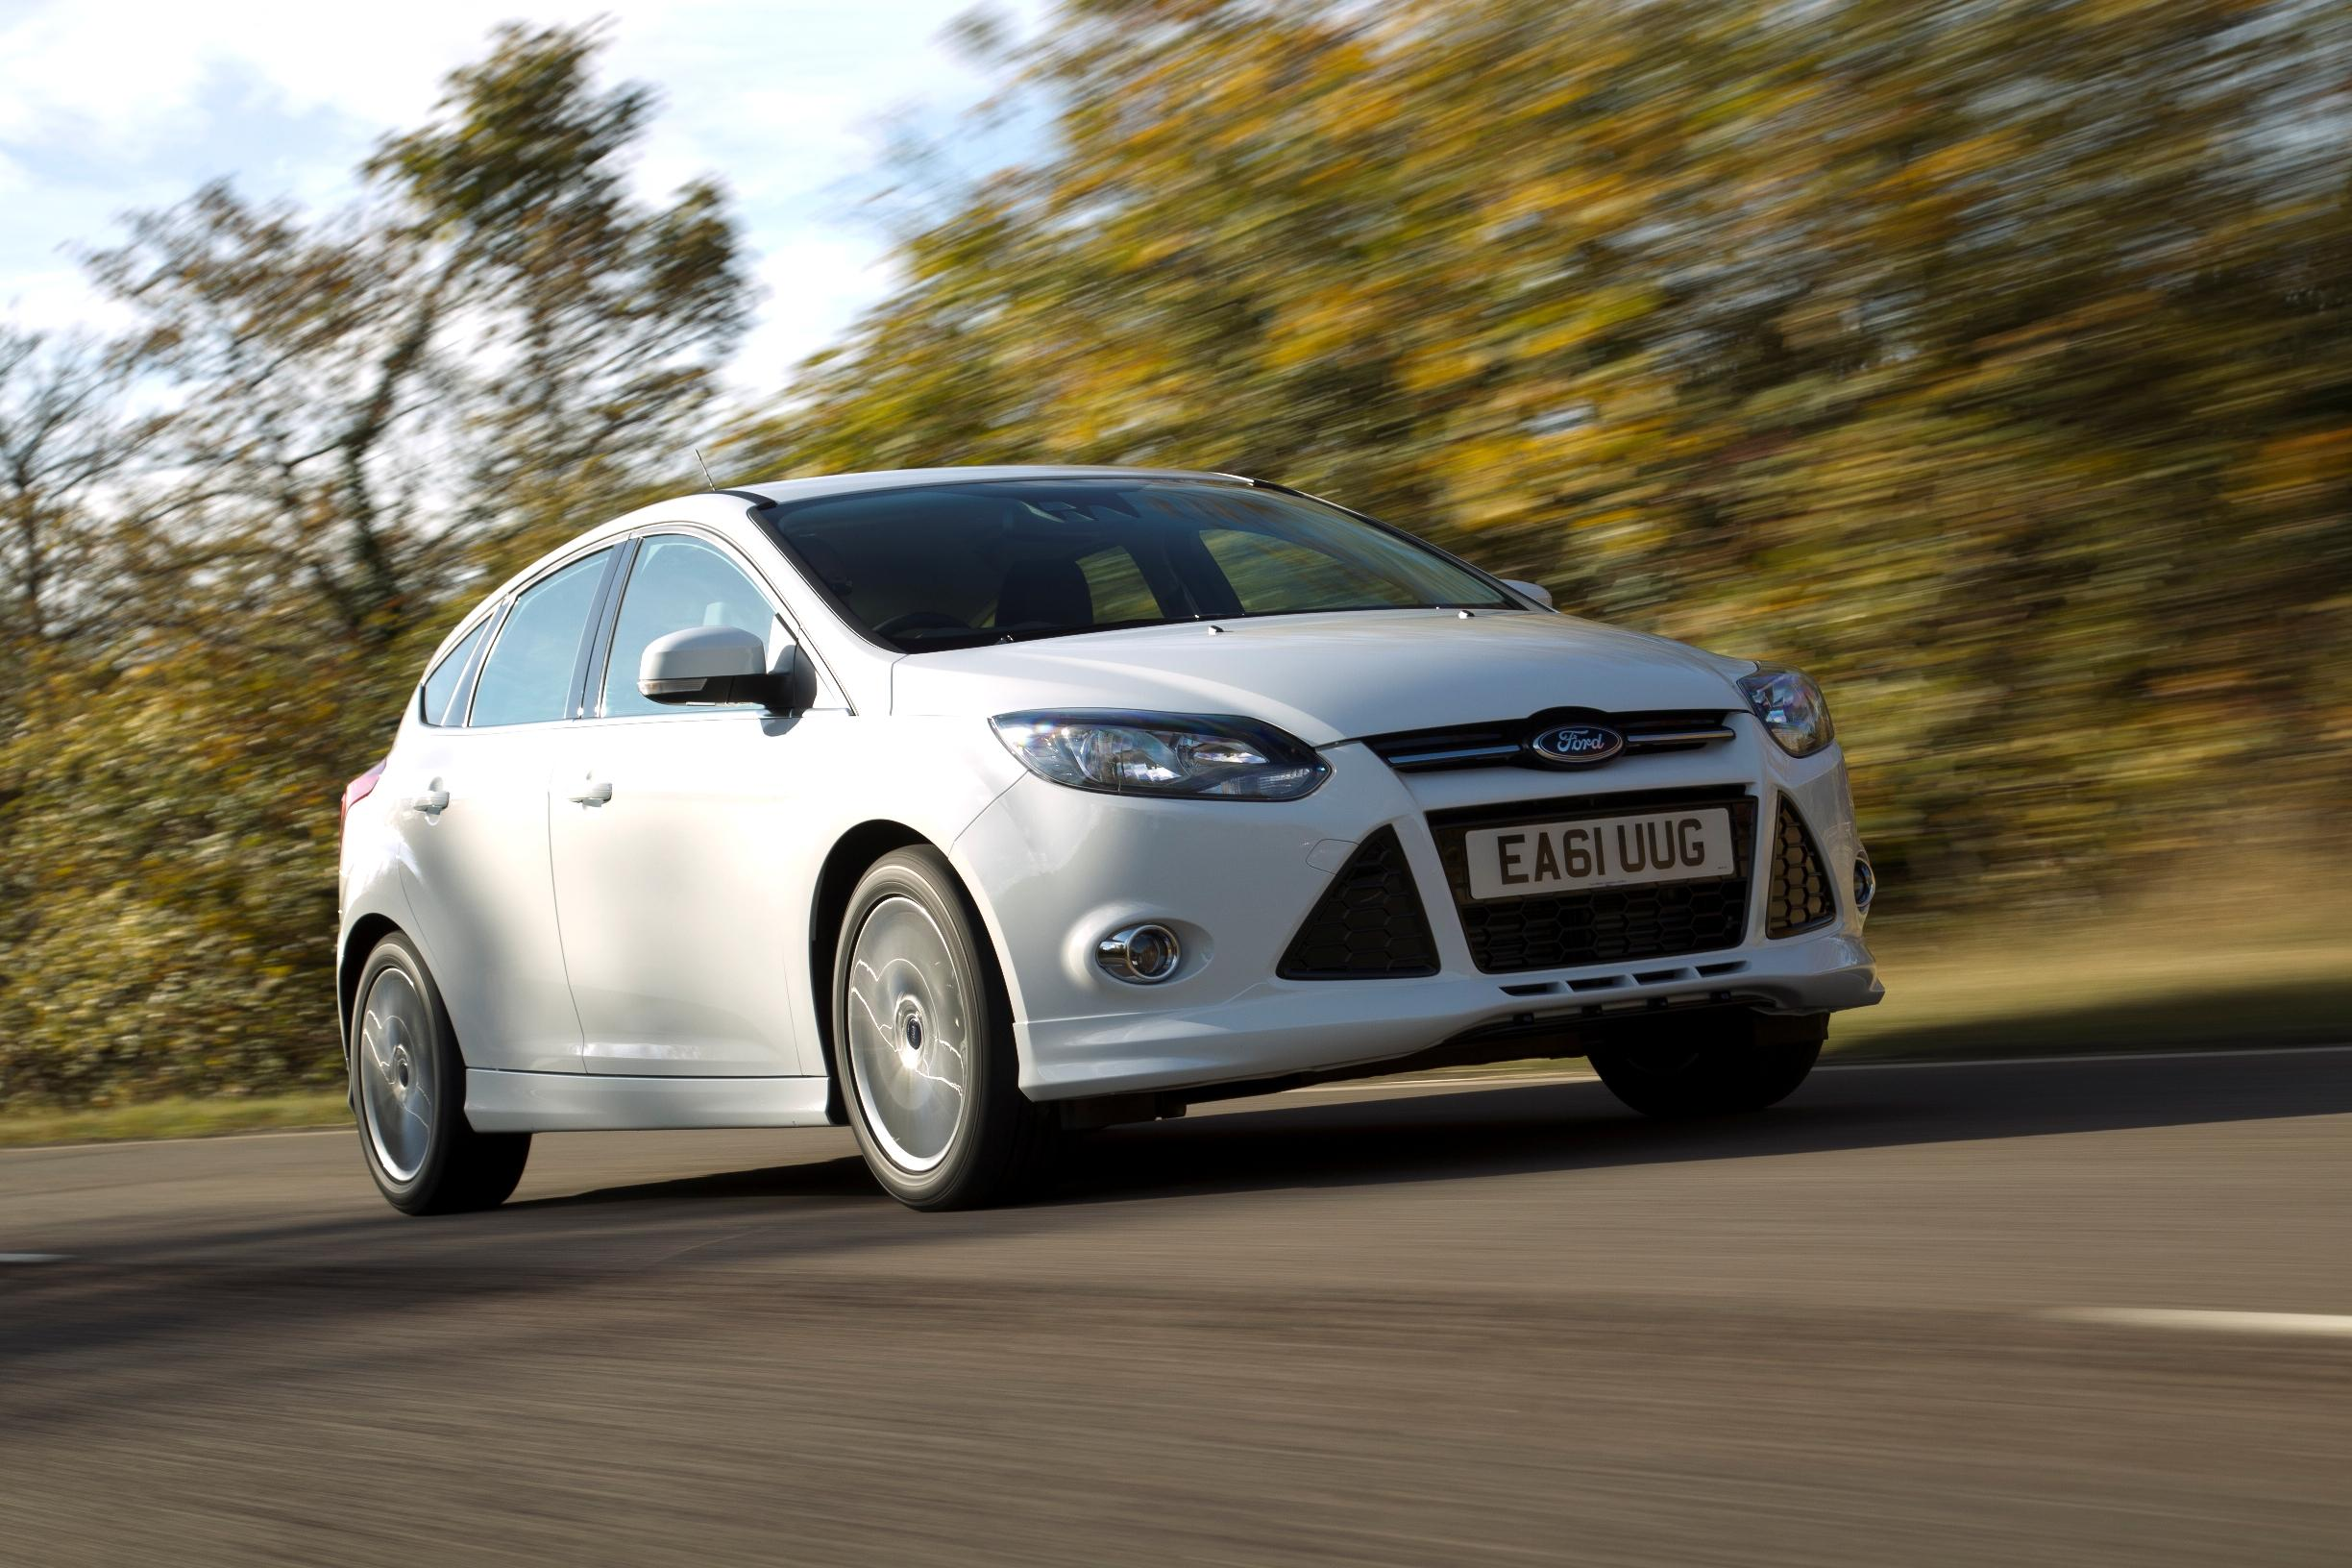 Ford Focus front view on road